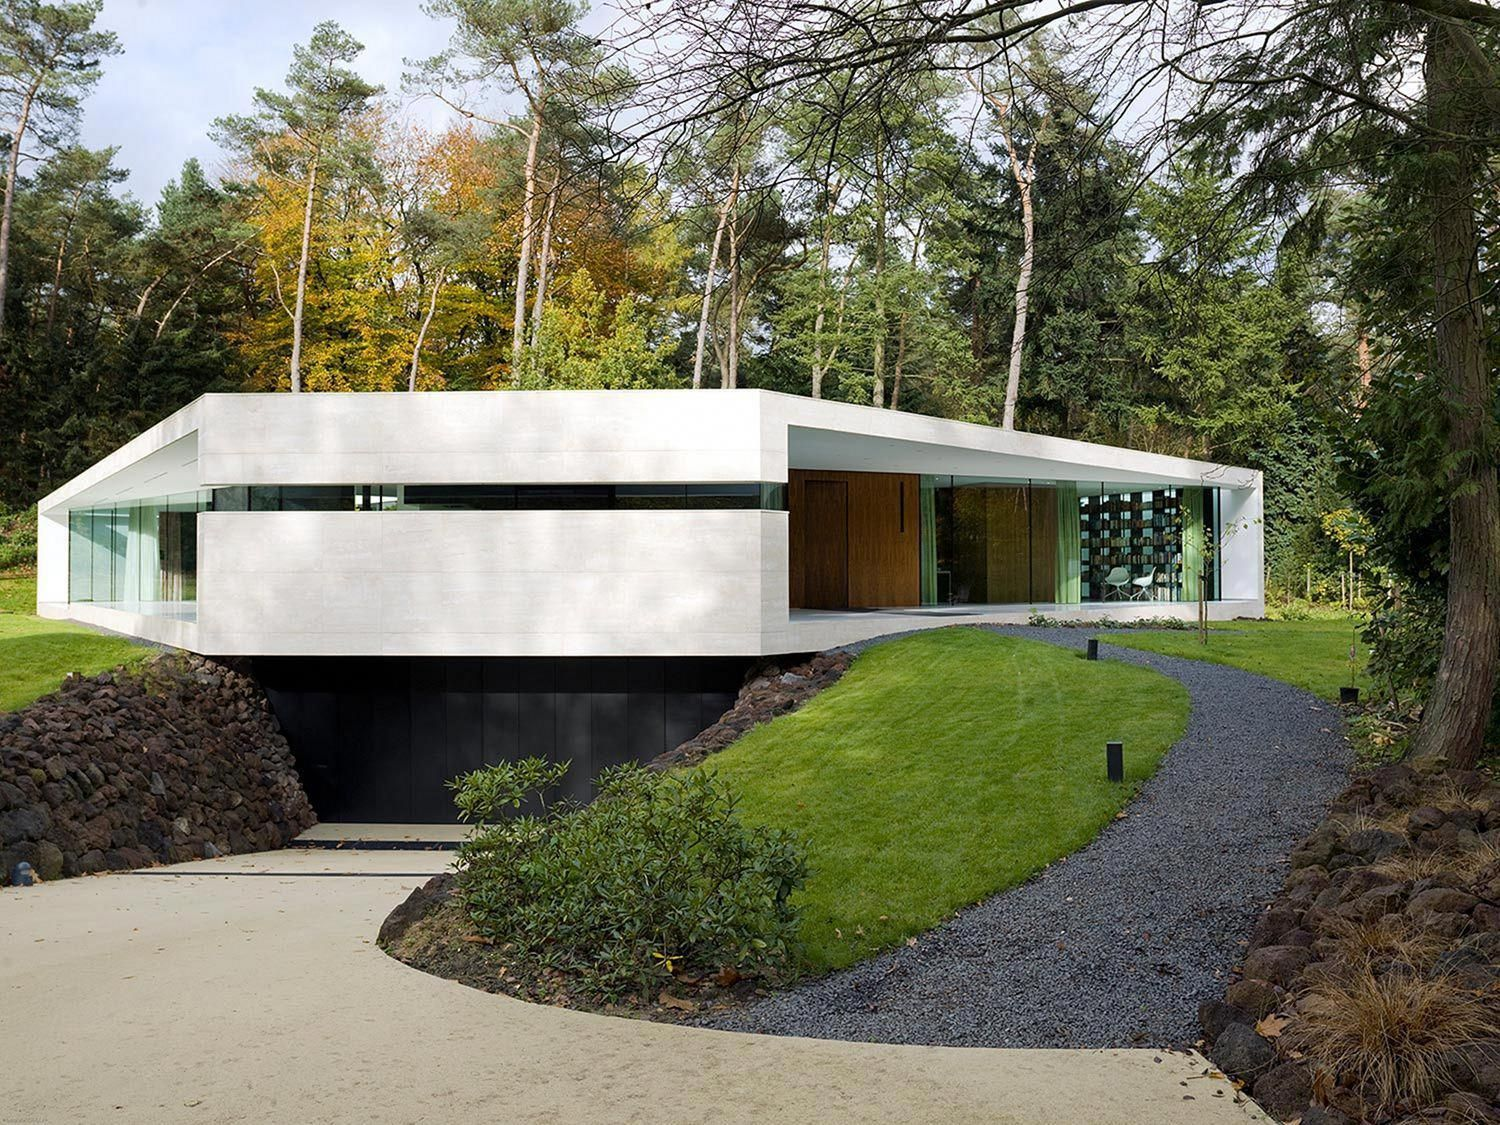 Modern Architecture Contracting Co Contemporaryarchitecture Underground Garage Futuristic Home Minimalist Architecture